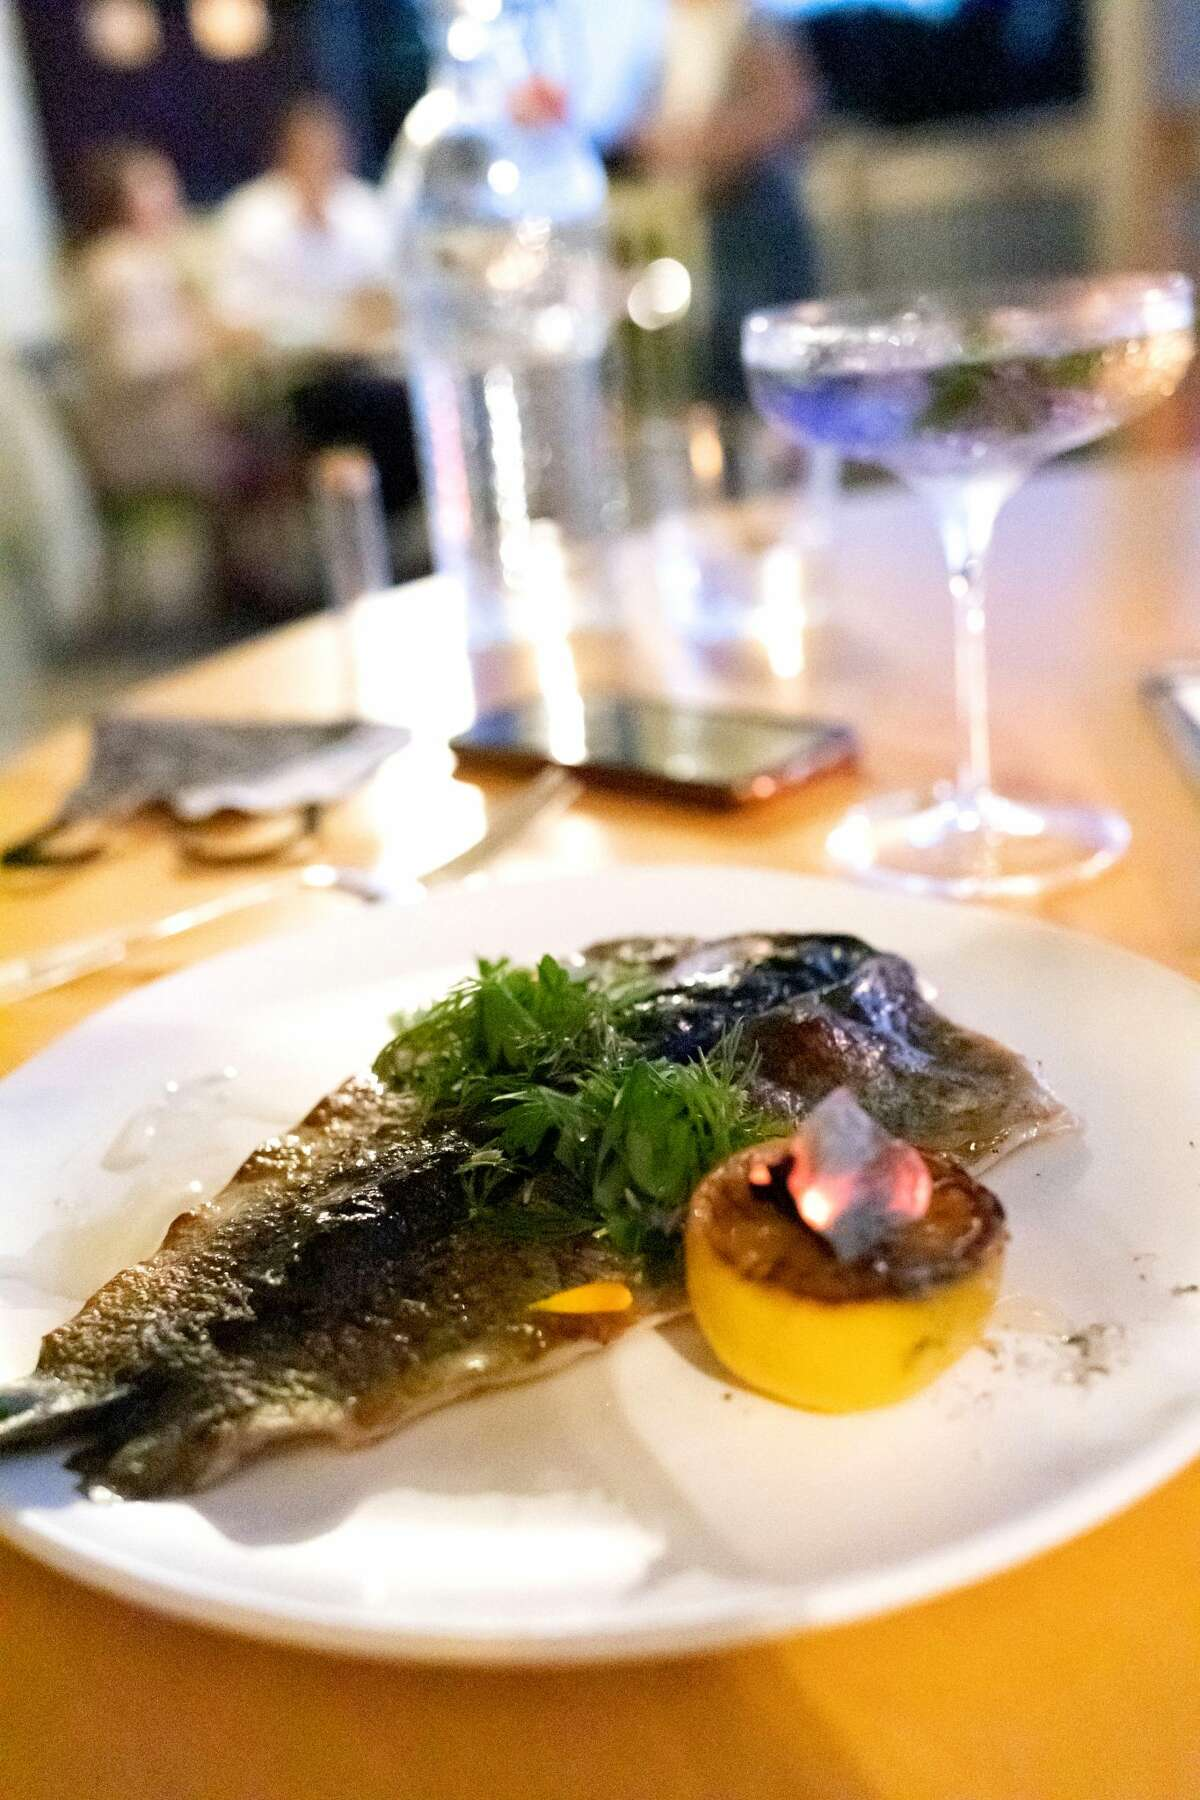 Wood-grilled trout was the lone animal protein in a recent multicourse meal at The Dutchess.(Photo by Konrad Odhiambo/For the Times Union.)